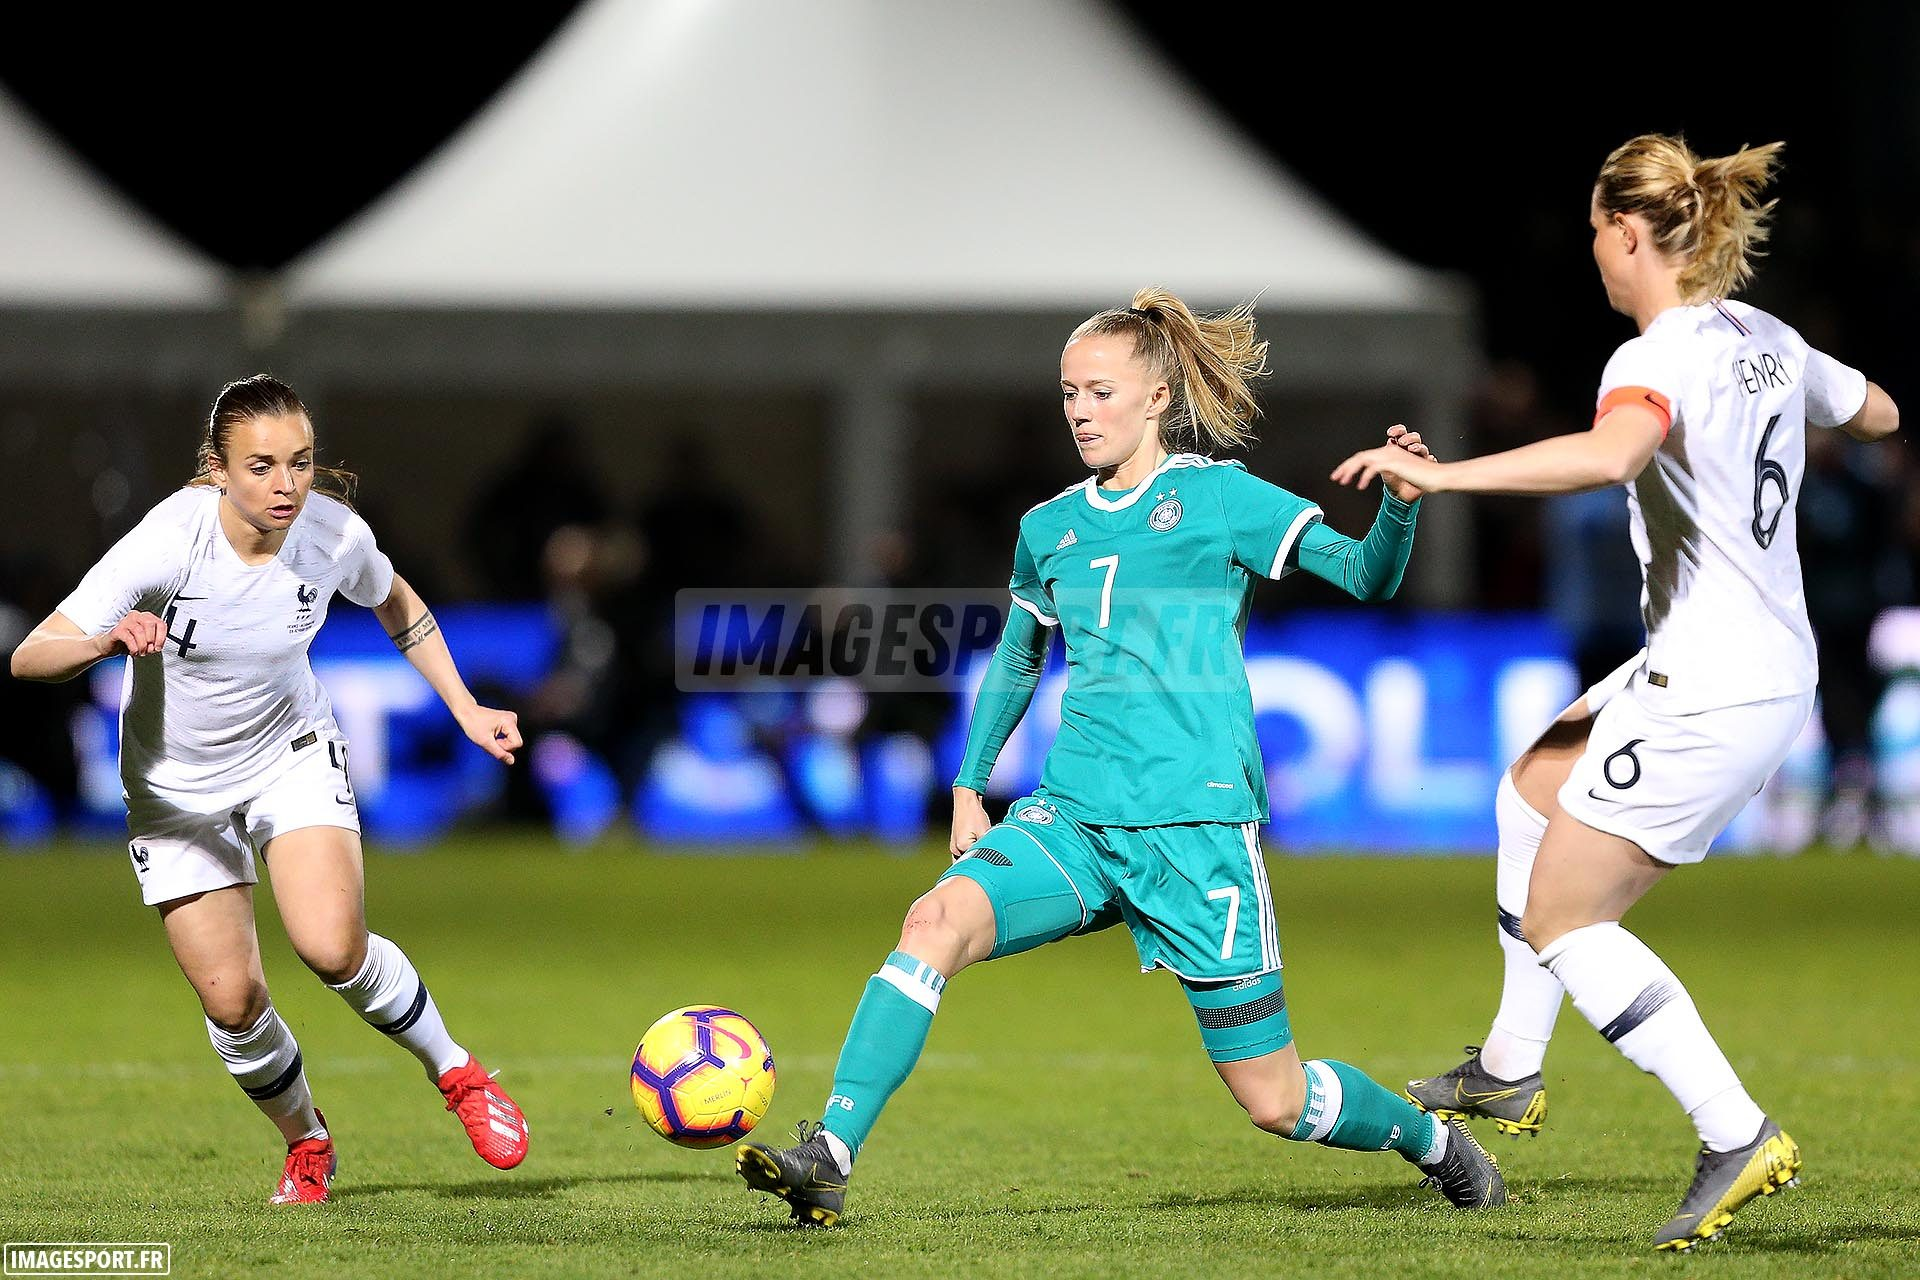 Marion TORRENT (France) / Lea SCHULLER (Allemagne) / Amandine HENRY (France)